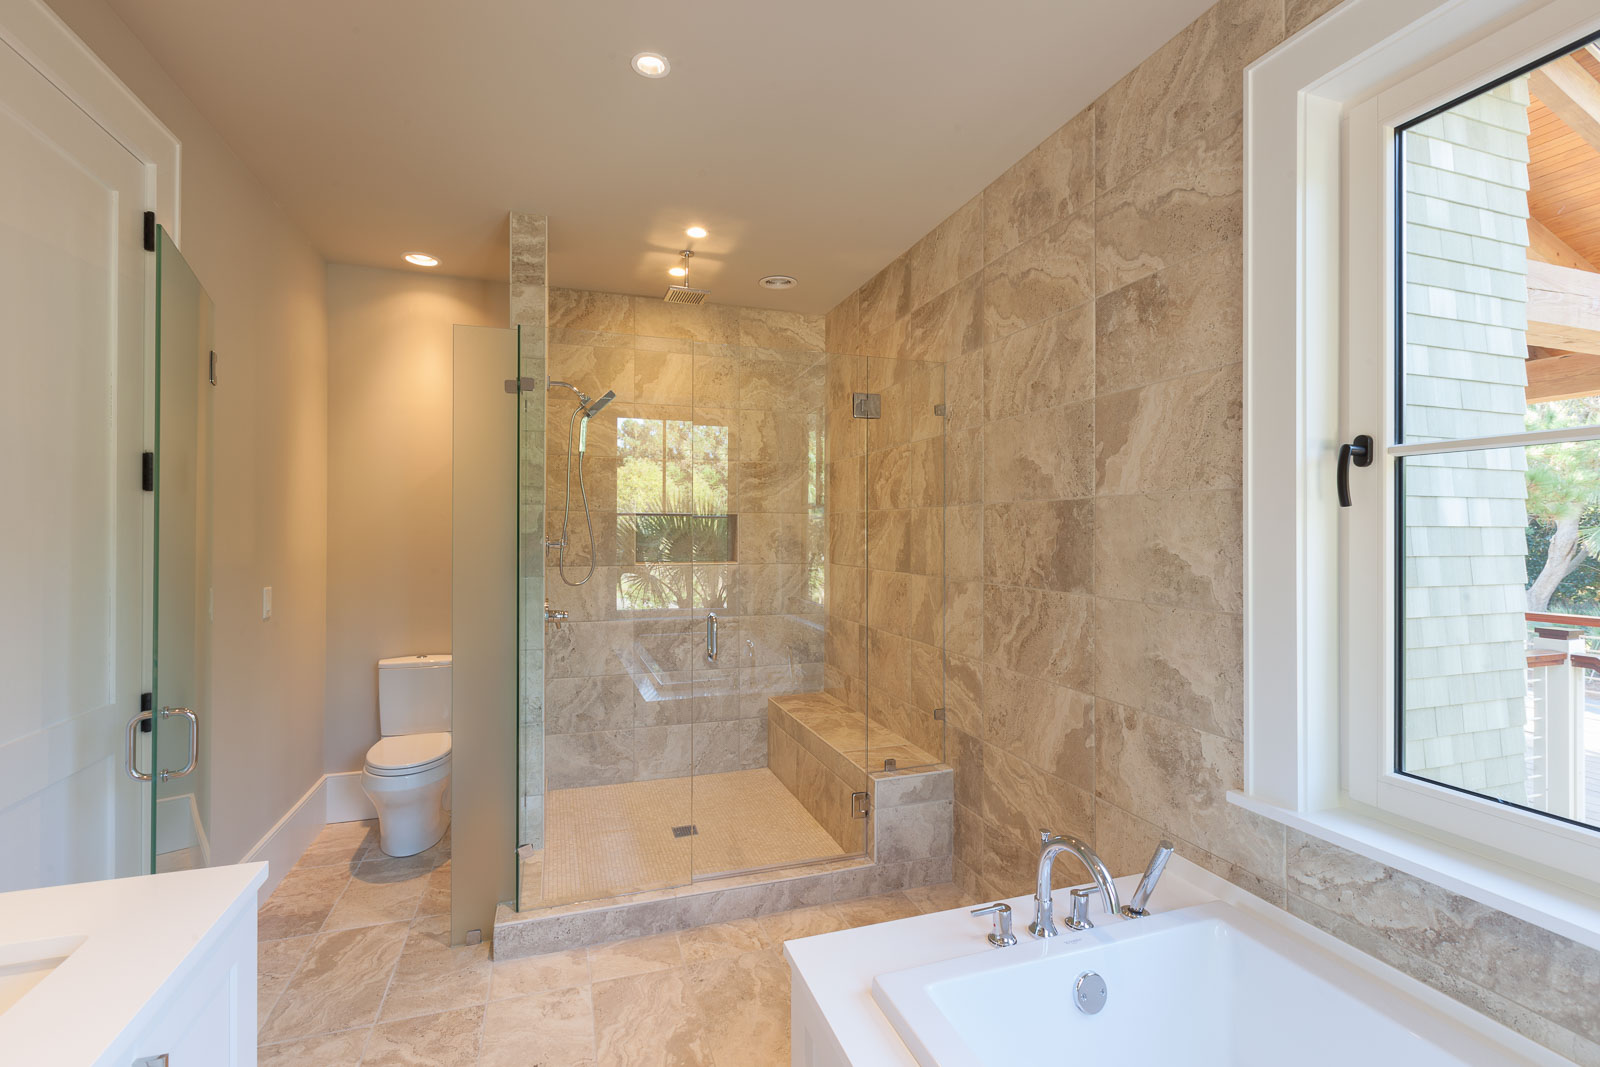 Bluffton bathroom architectural photography